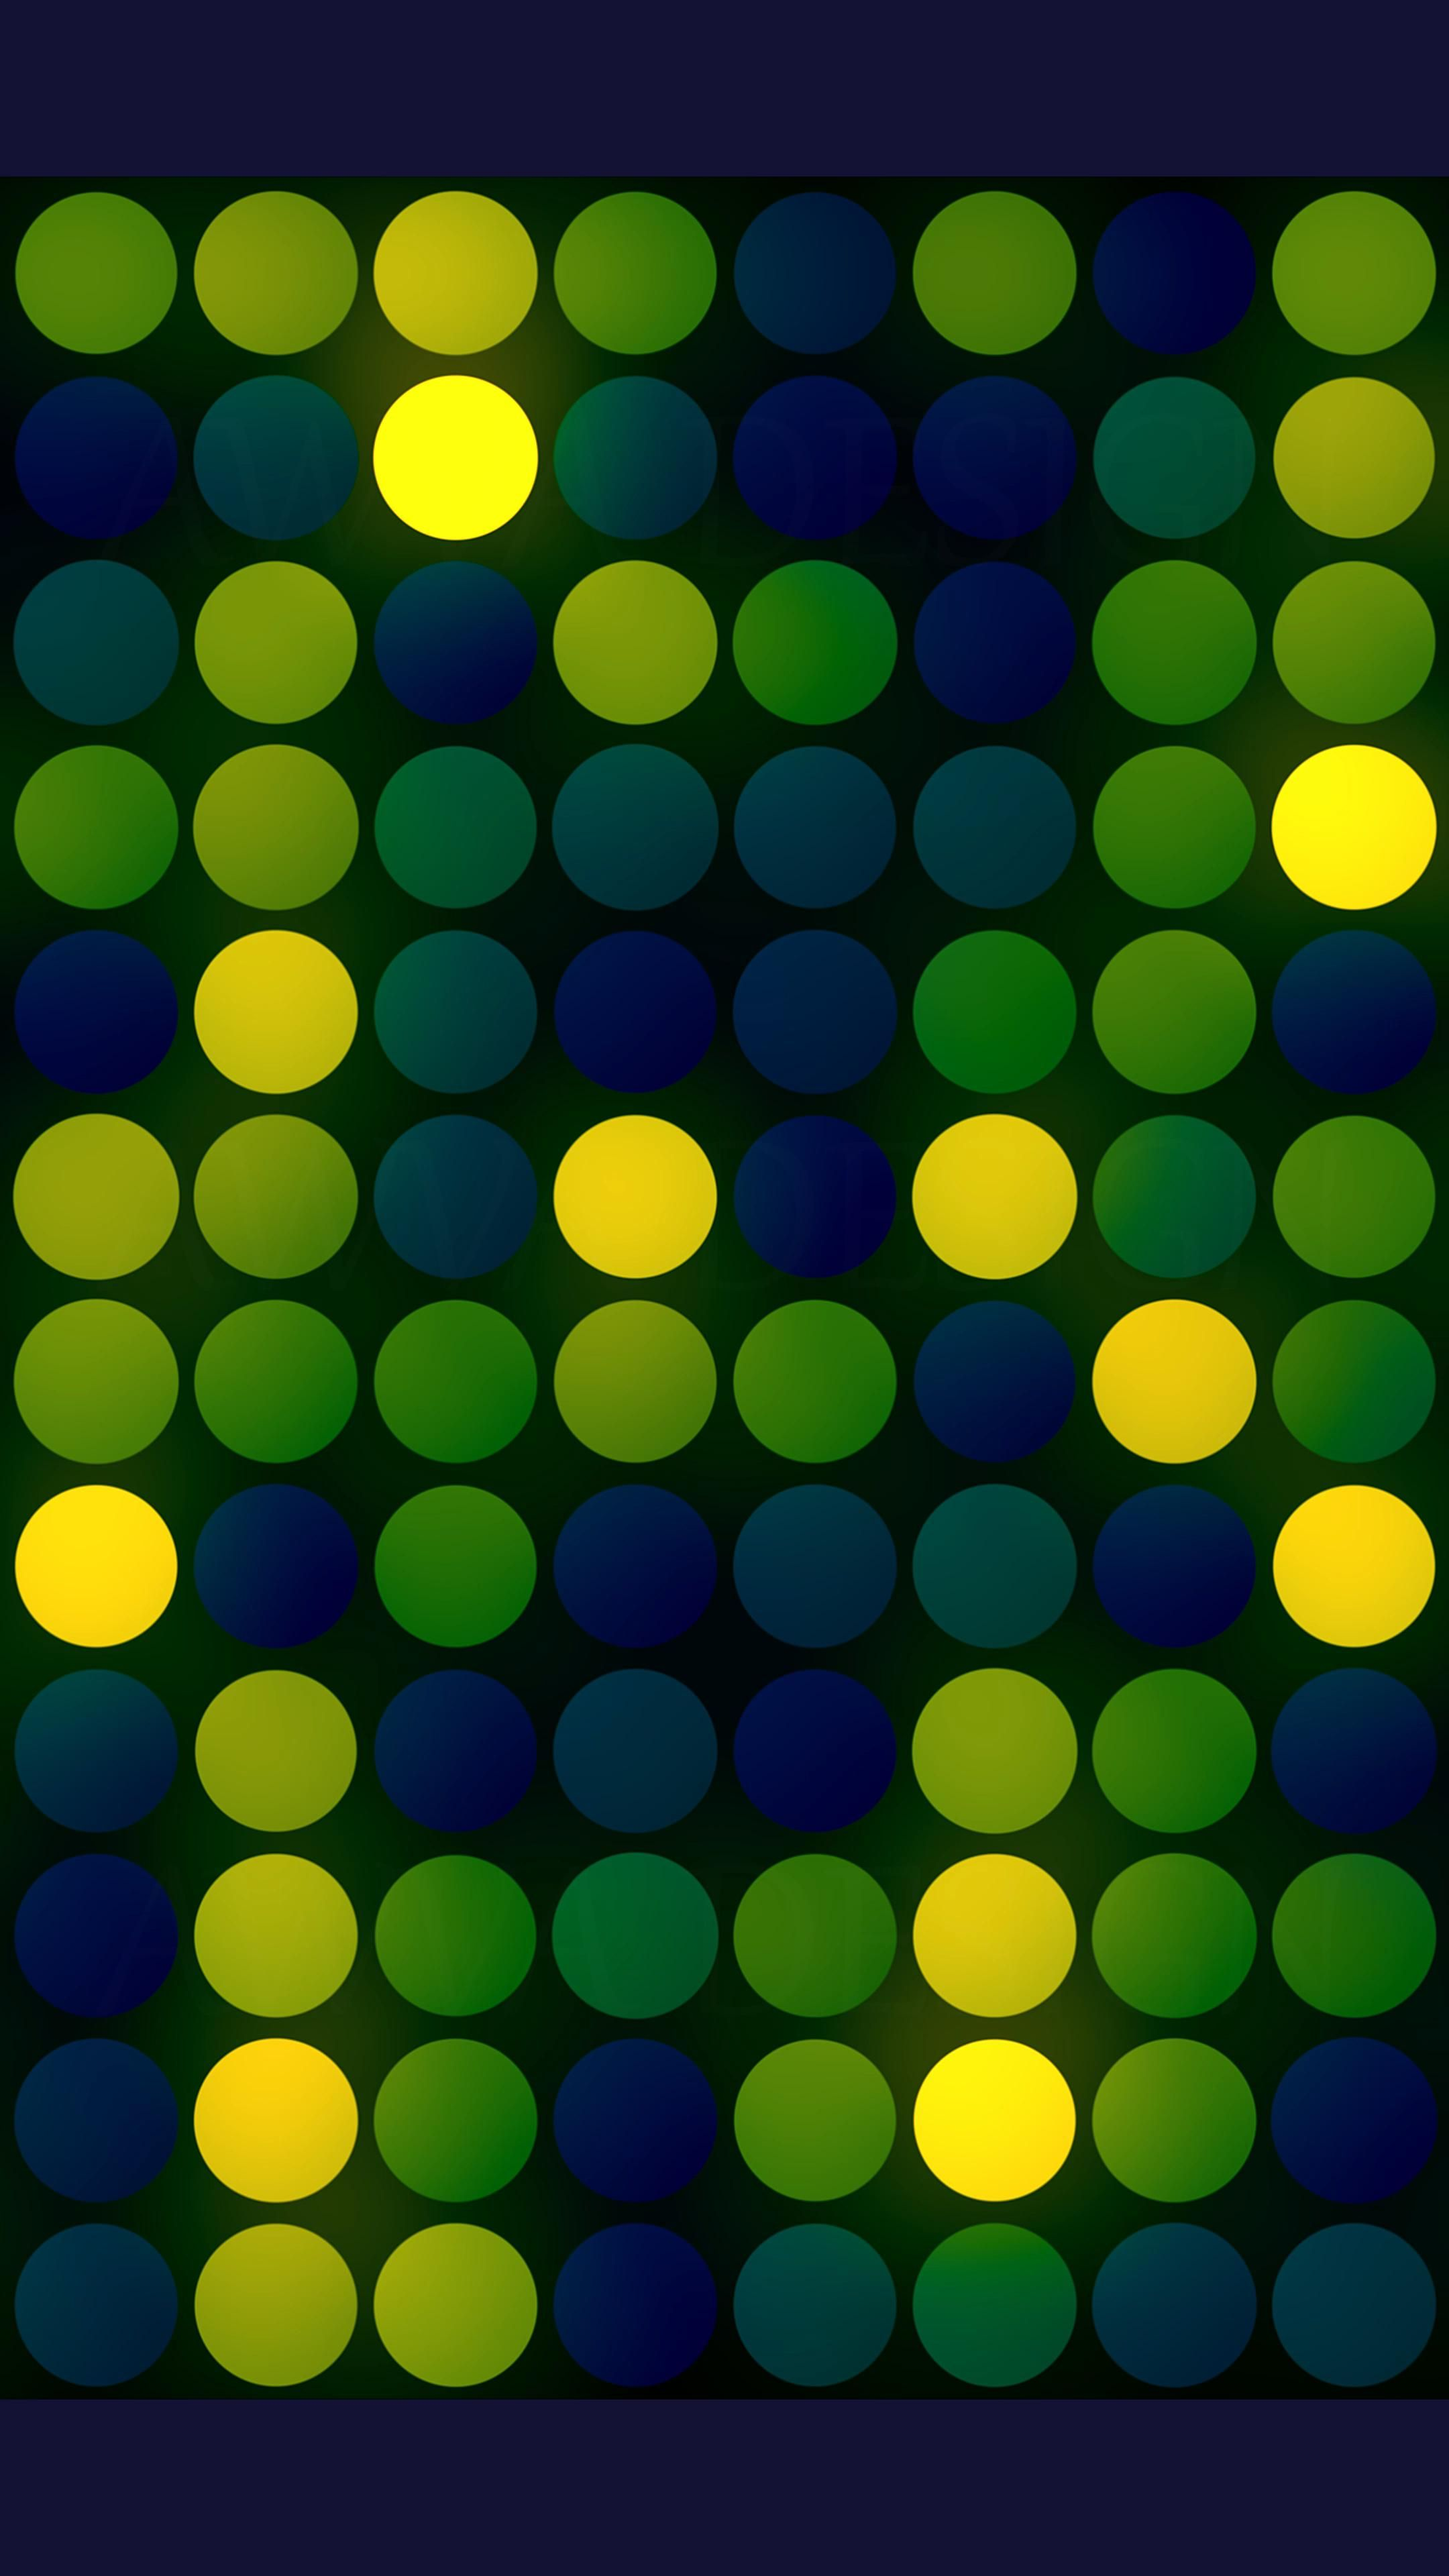 Seamless wallpaper with random glowing green-yellow rounds.